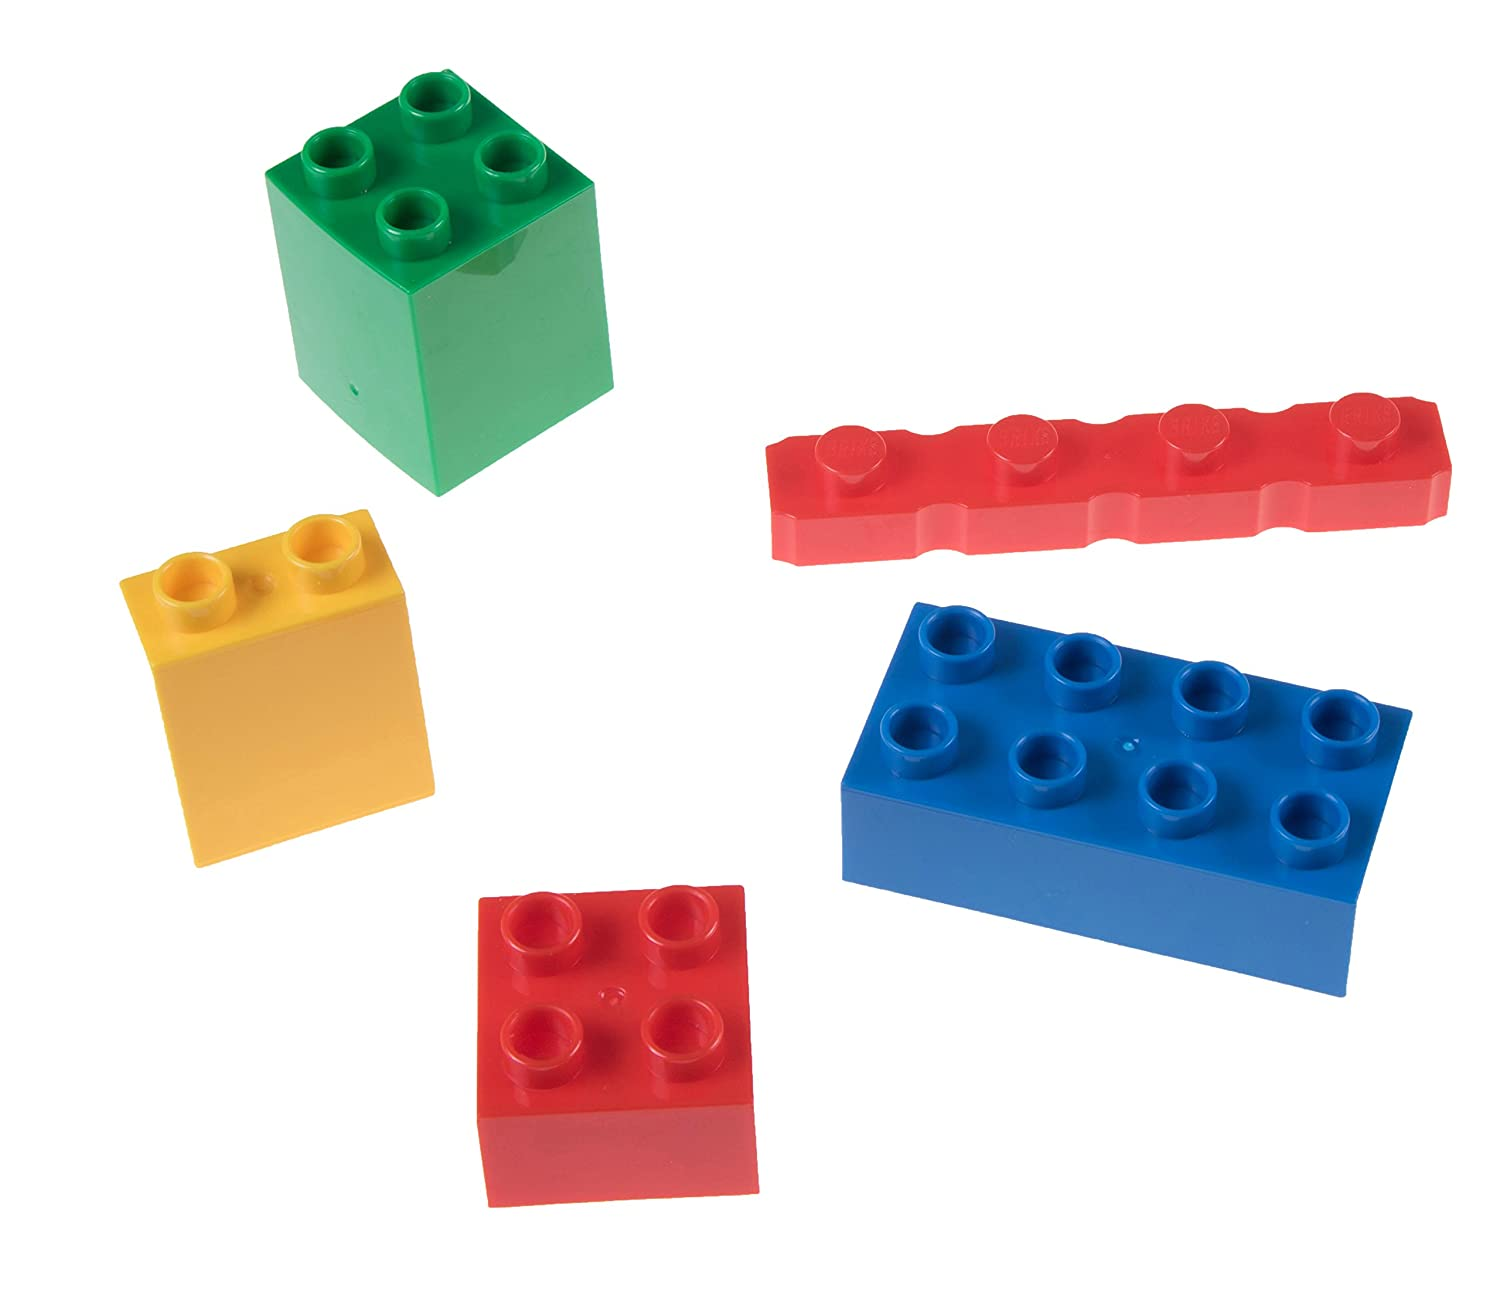 1 Large Block Size Set for Ages 3+ Green 2x2 Big Briks in Red 24 Pieces Blue Yellow Strictly Briks Big Briks Building Brick Set 100/% Compatible with All Major Brands Creative Play STEM Toy